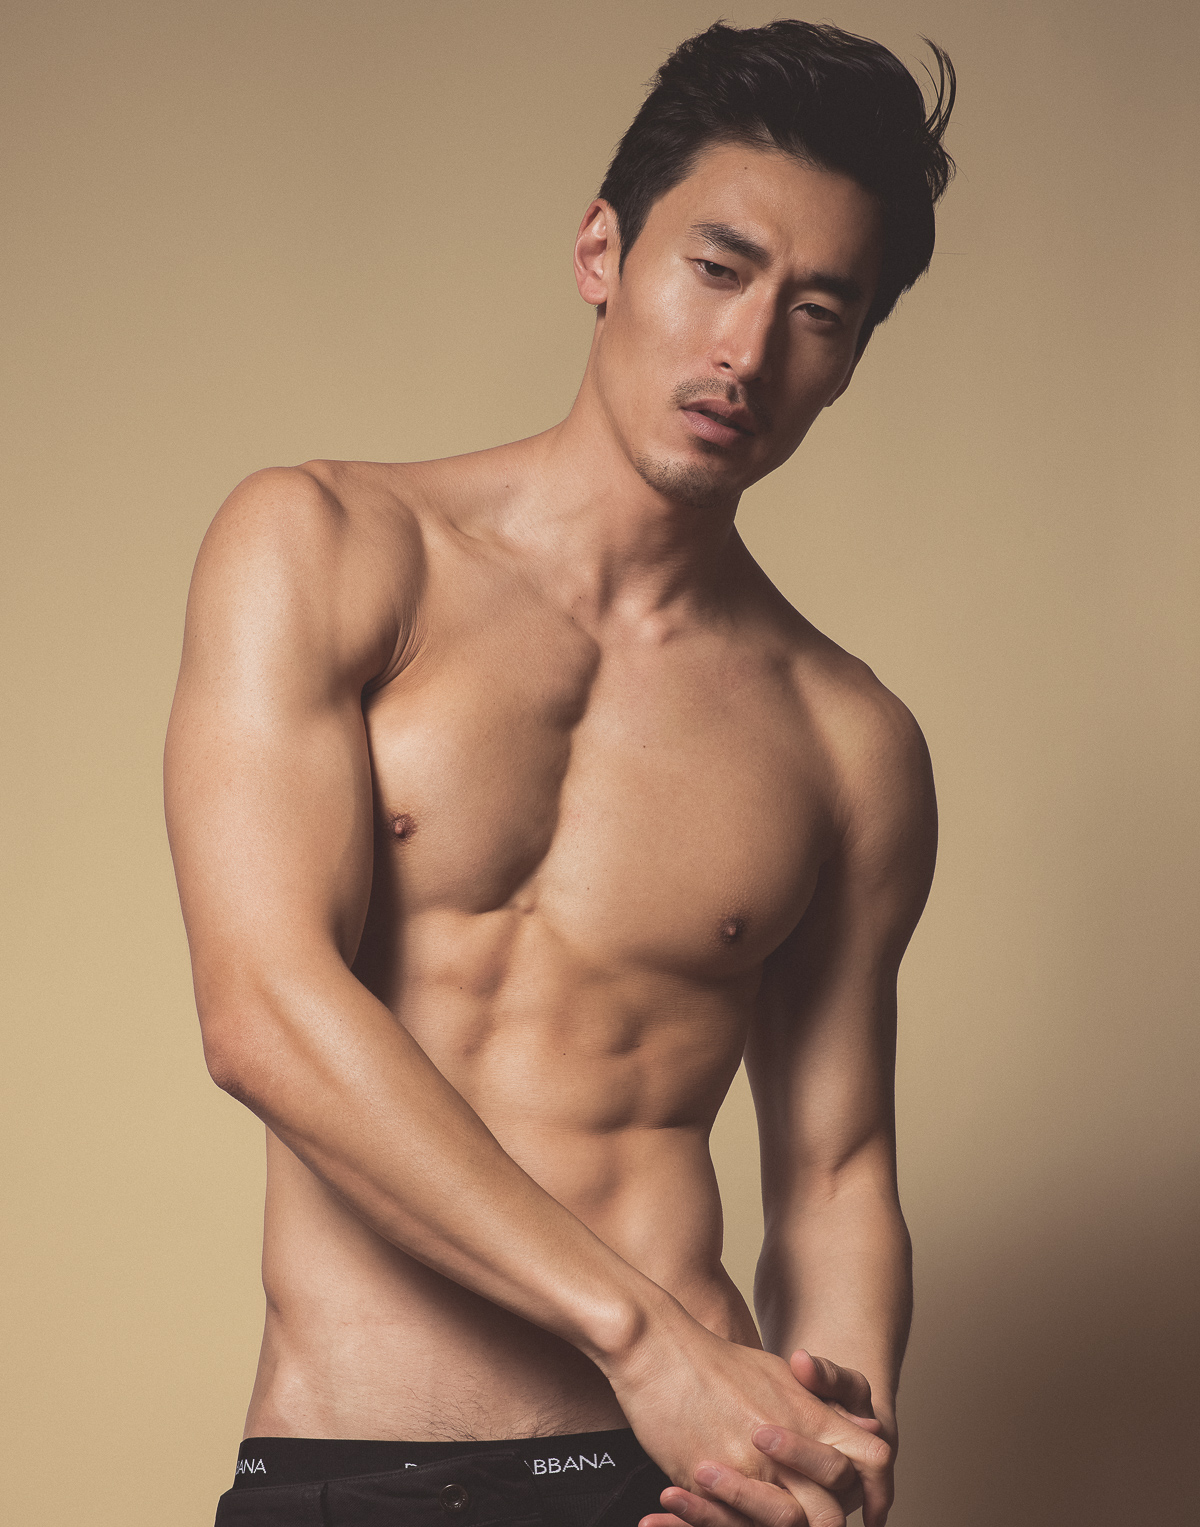 They asian guys aren't sexy